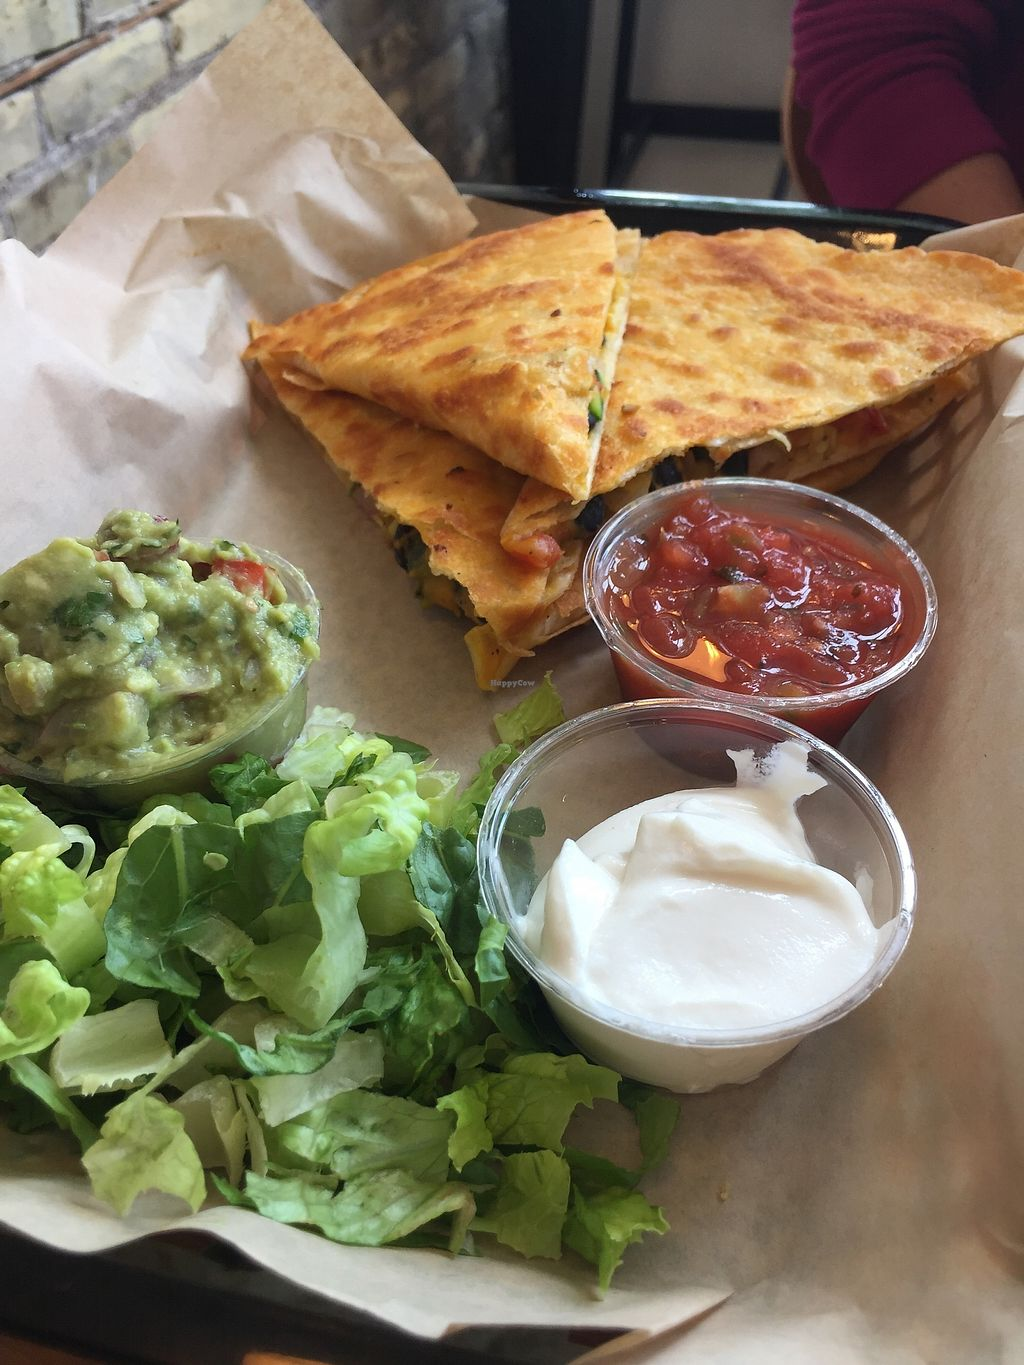 """Photo of J Selby's  by <a href=""""/members/profile/samuelj8"""">samuelj8</a> <br/>quesadillas  <br/> August 26, 2017  - <a href='/contact/abuse/image/90026/297467'>Report</a>"""